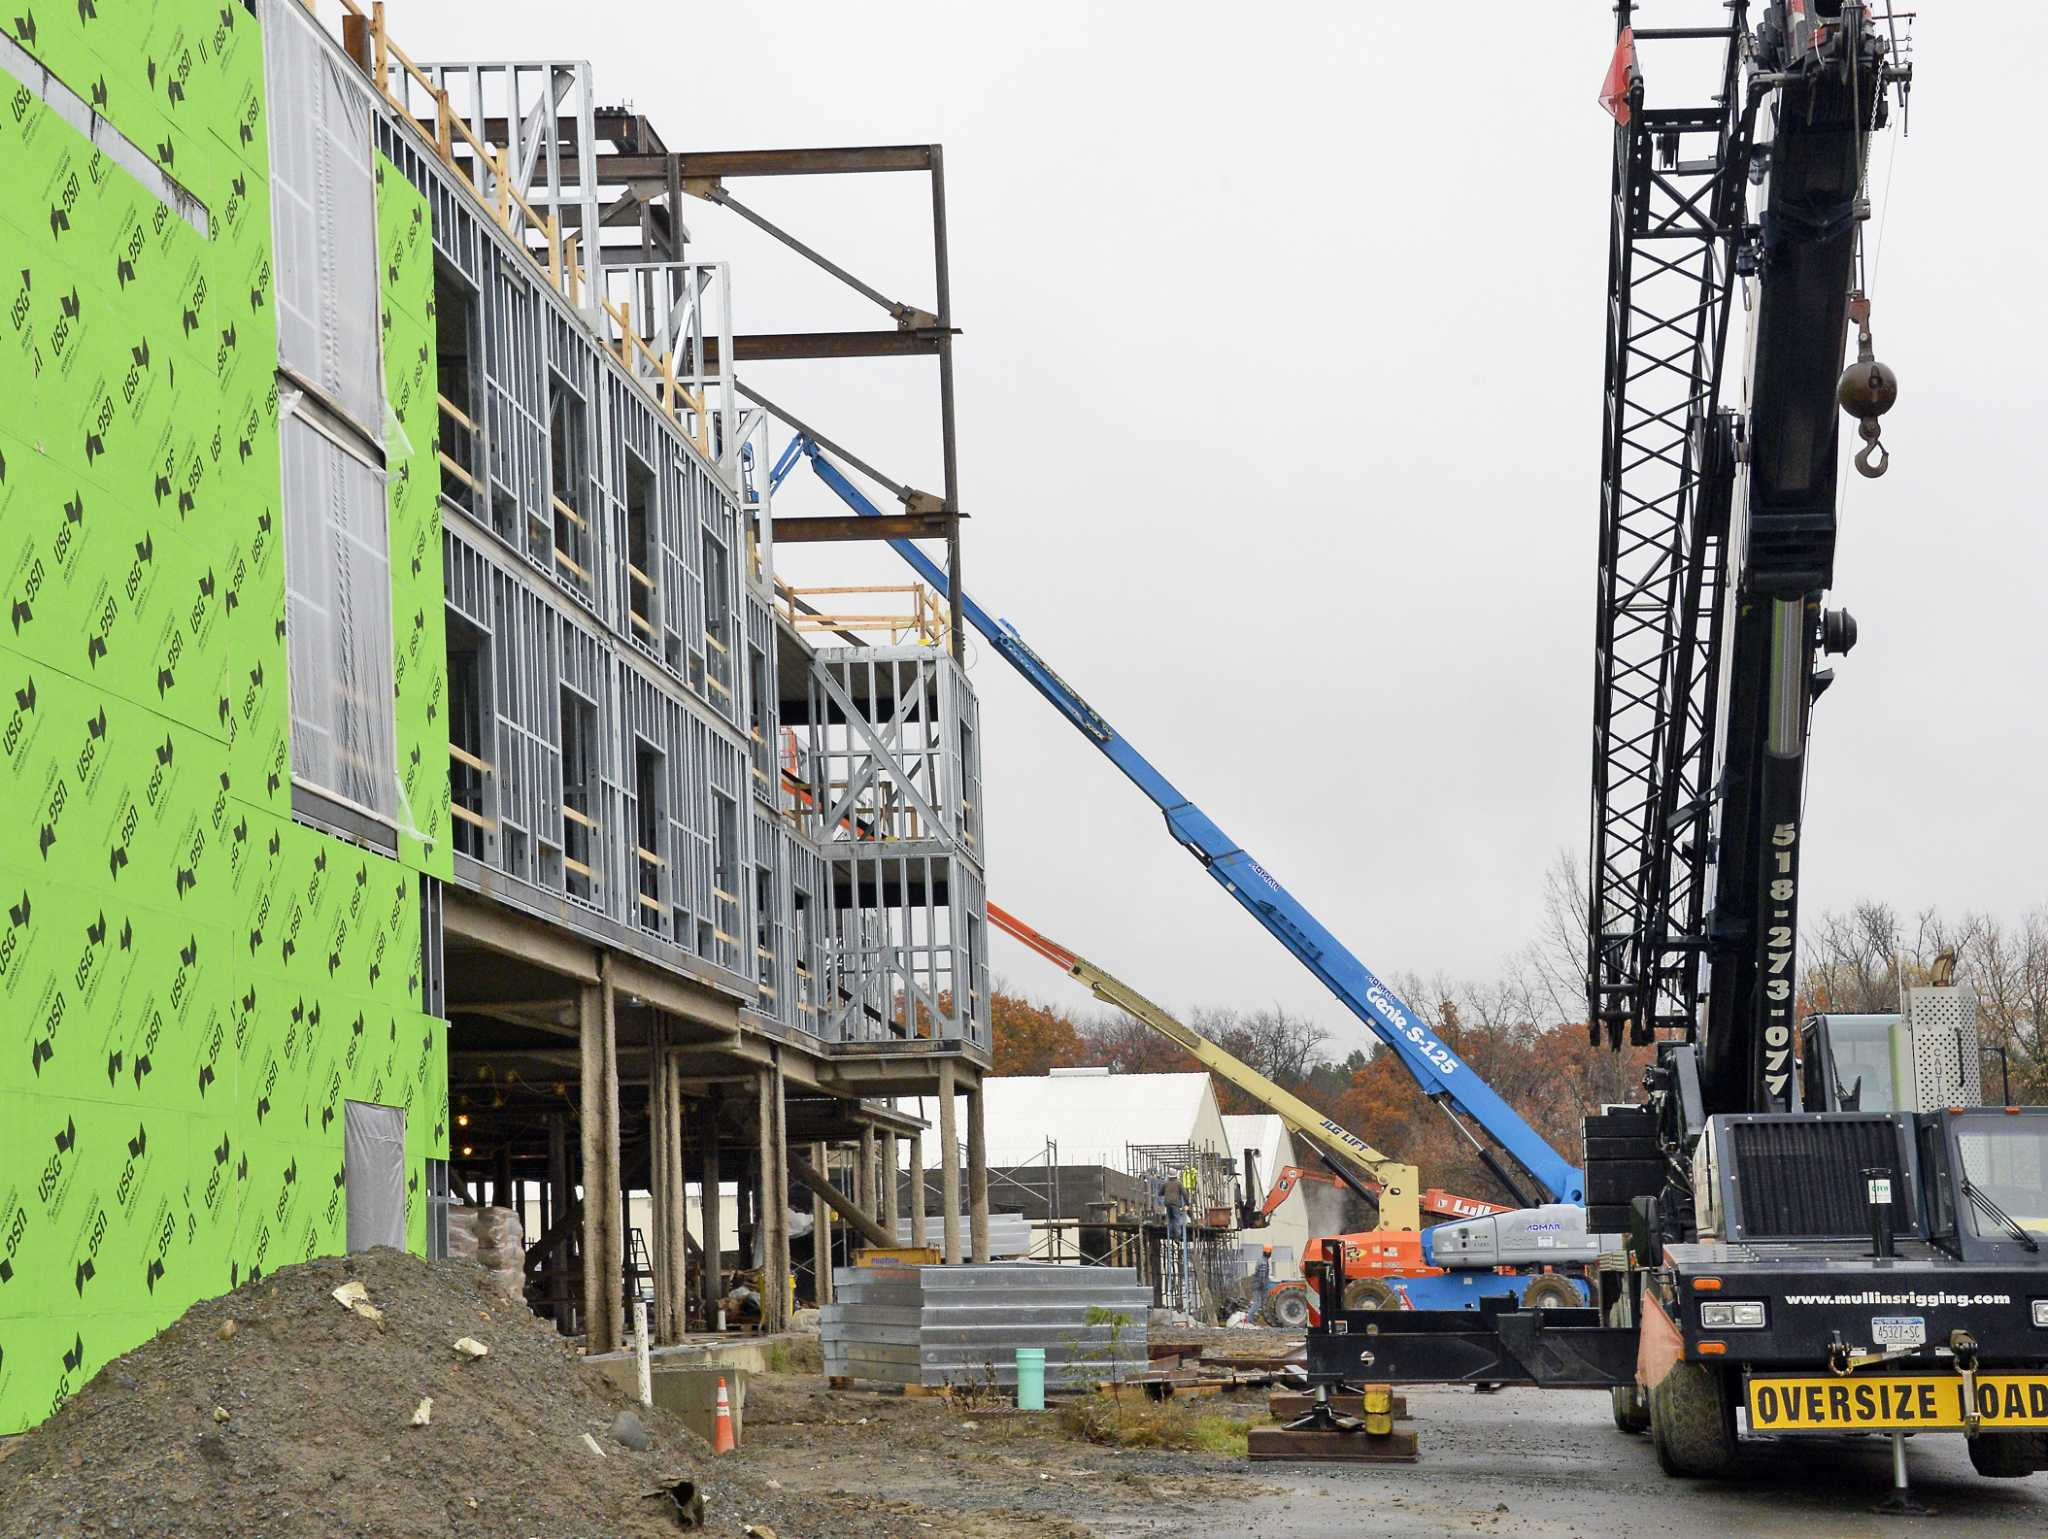 Marriott dual-brand hotel taking shape in Colonie - SFChronicle com